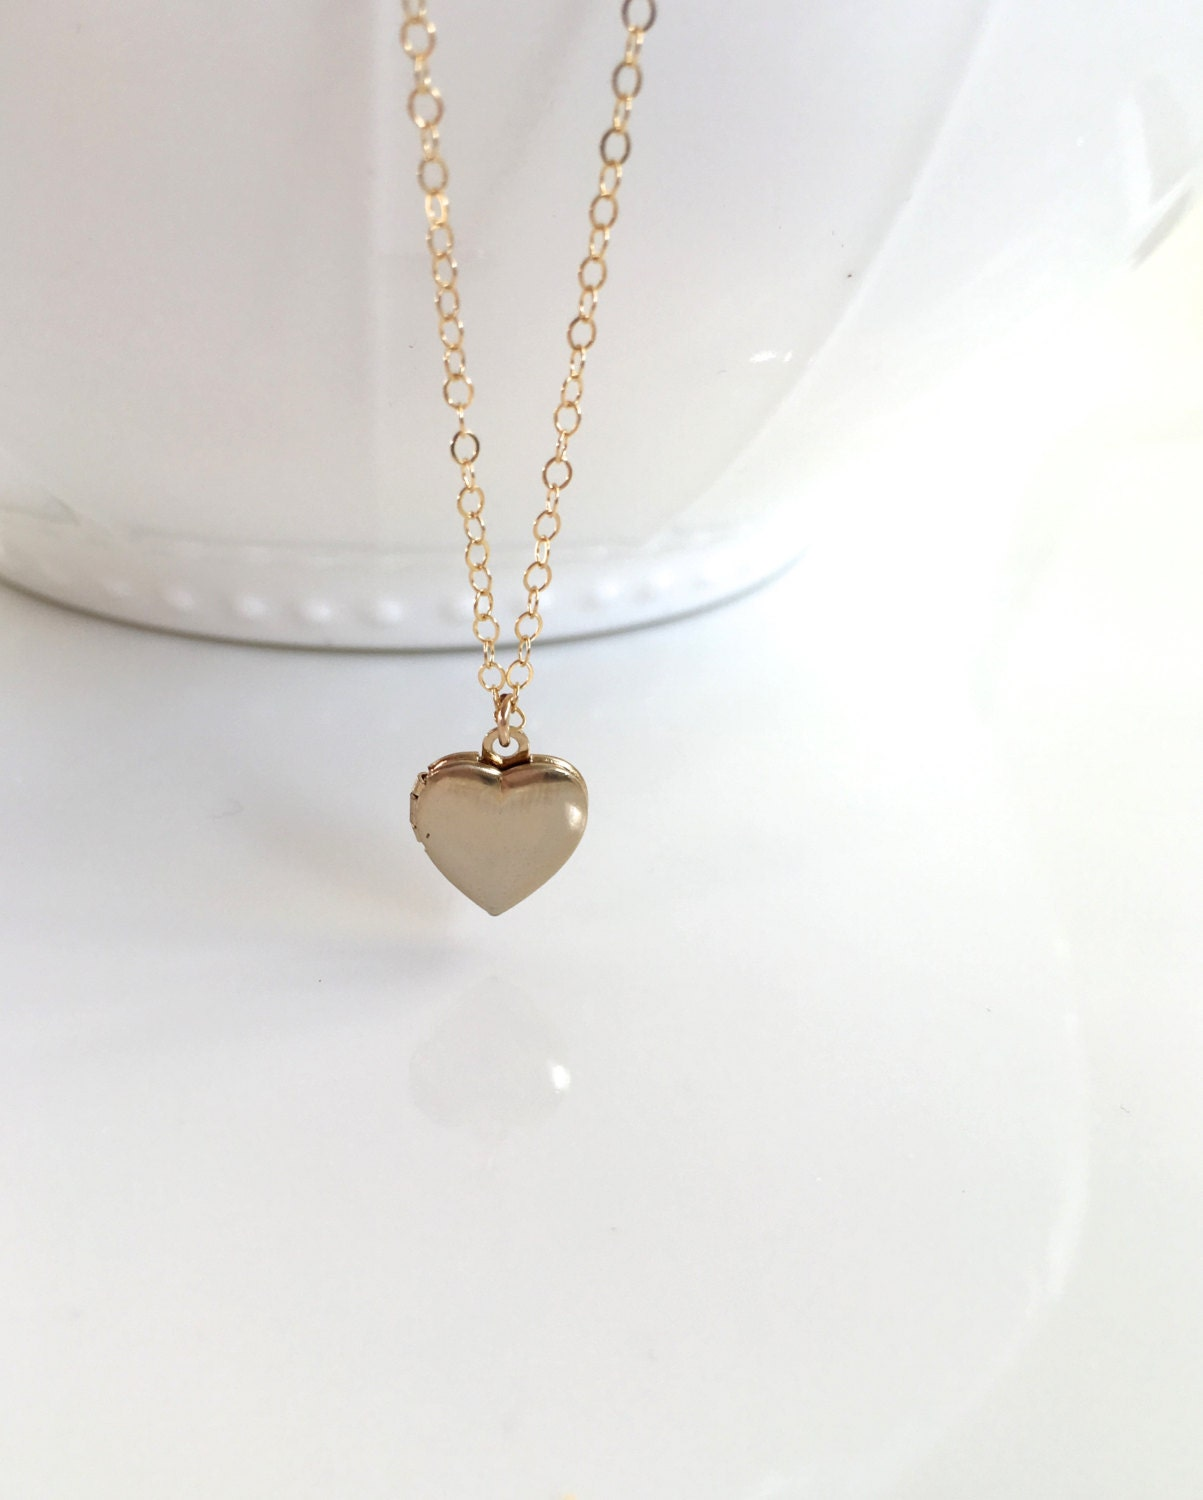 Gold filled heart locket necklace gold filled heart for Gold filled jewelry